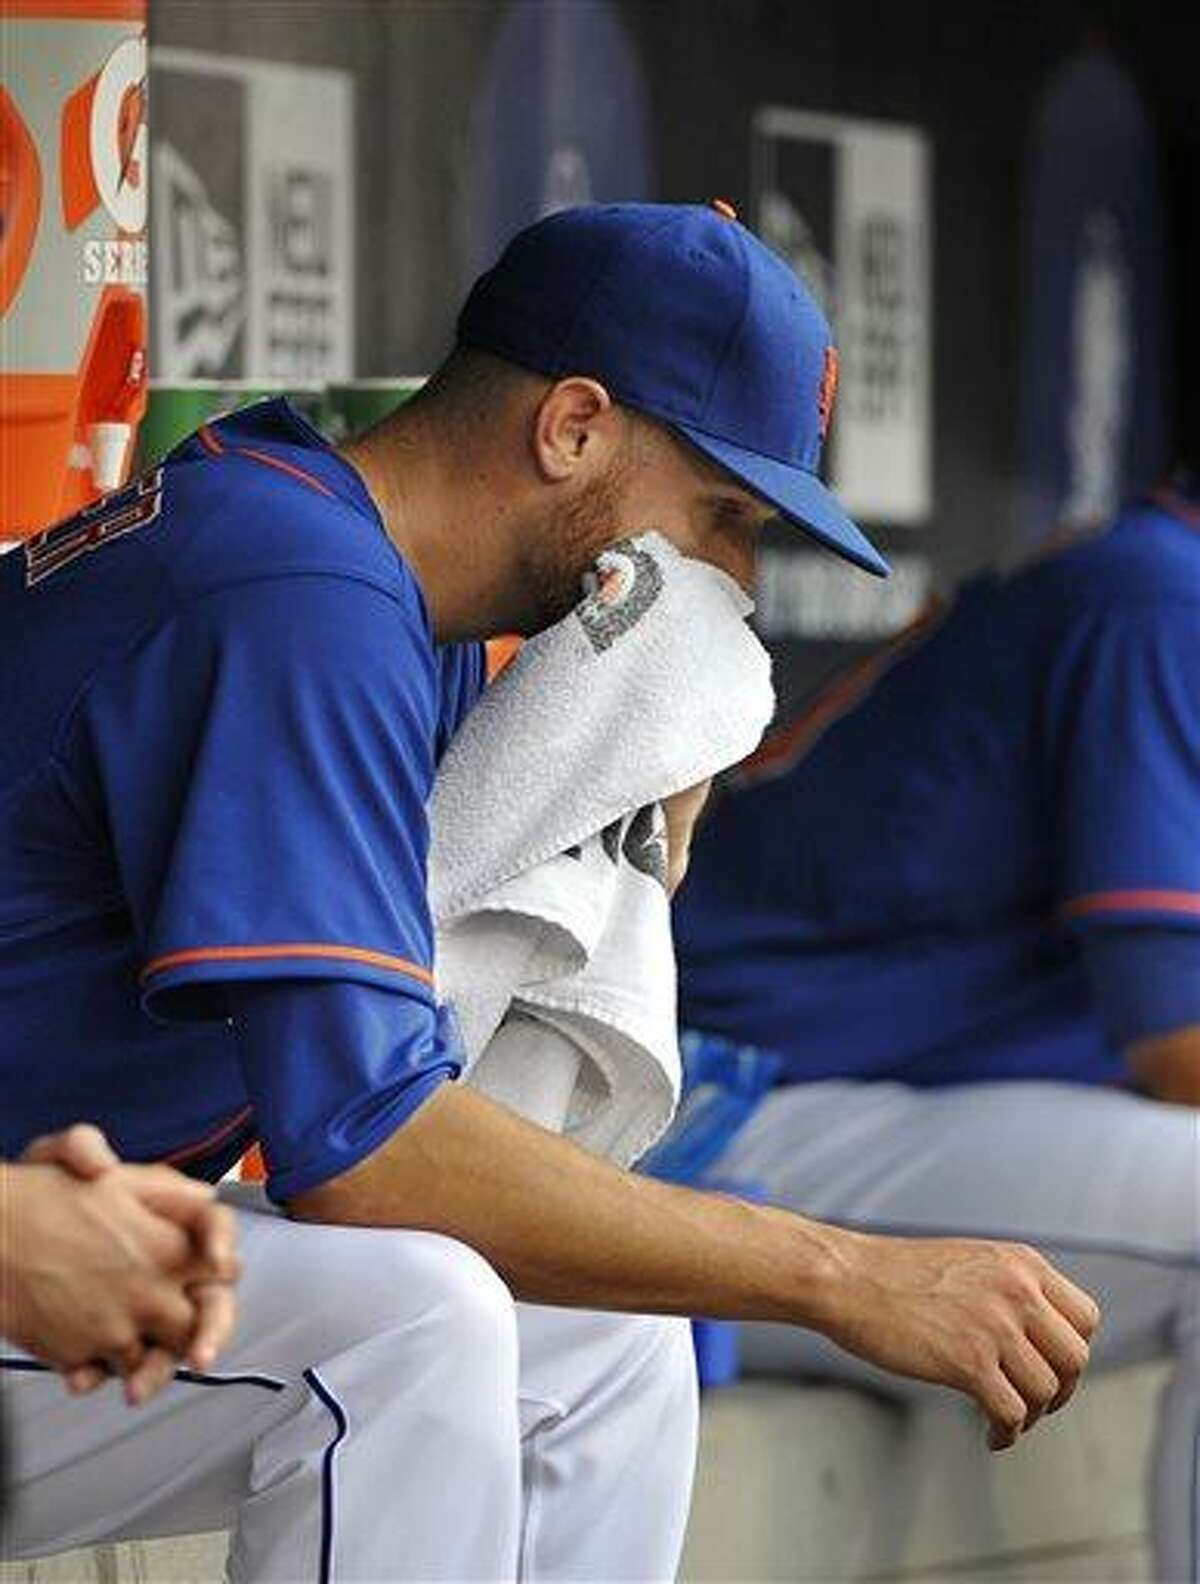 New York Mets starting pitcher Zack Wheeler sits in the dugout after being taken out of the baseball game against the Washington Nationals in the fifth inning at Citi Field on Sunday, June 30, 2013 in New York. (AP Photo/Kathy Kmonicek)